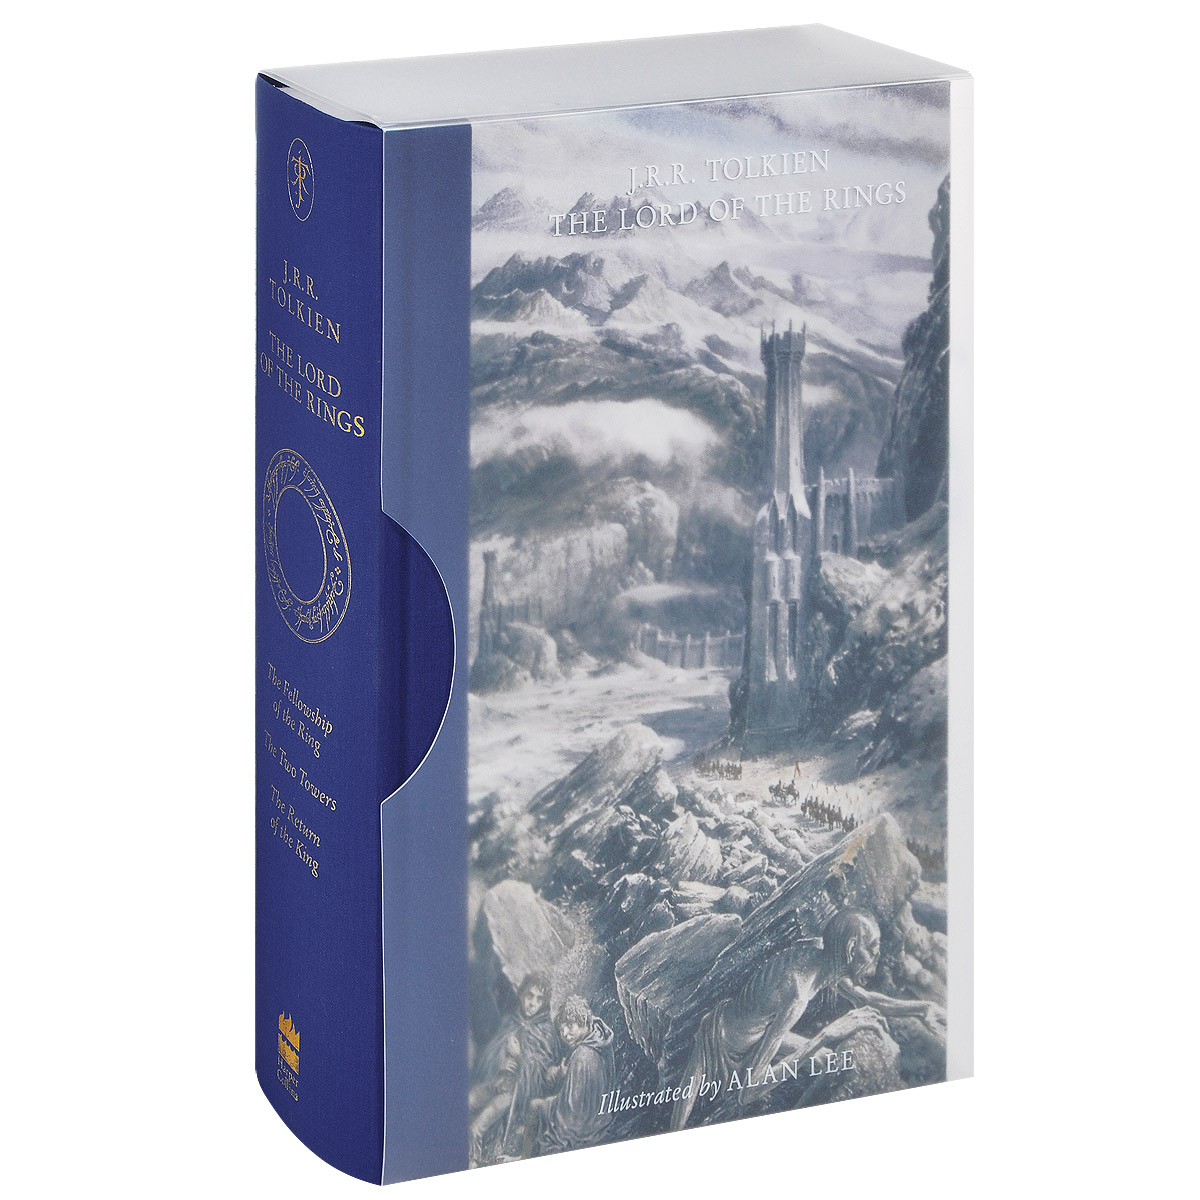 The Lord of the Rings free shipping old first of the same name paintings chinese edition book for adult